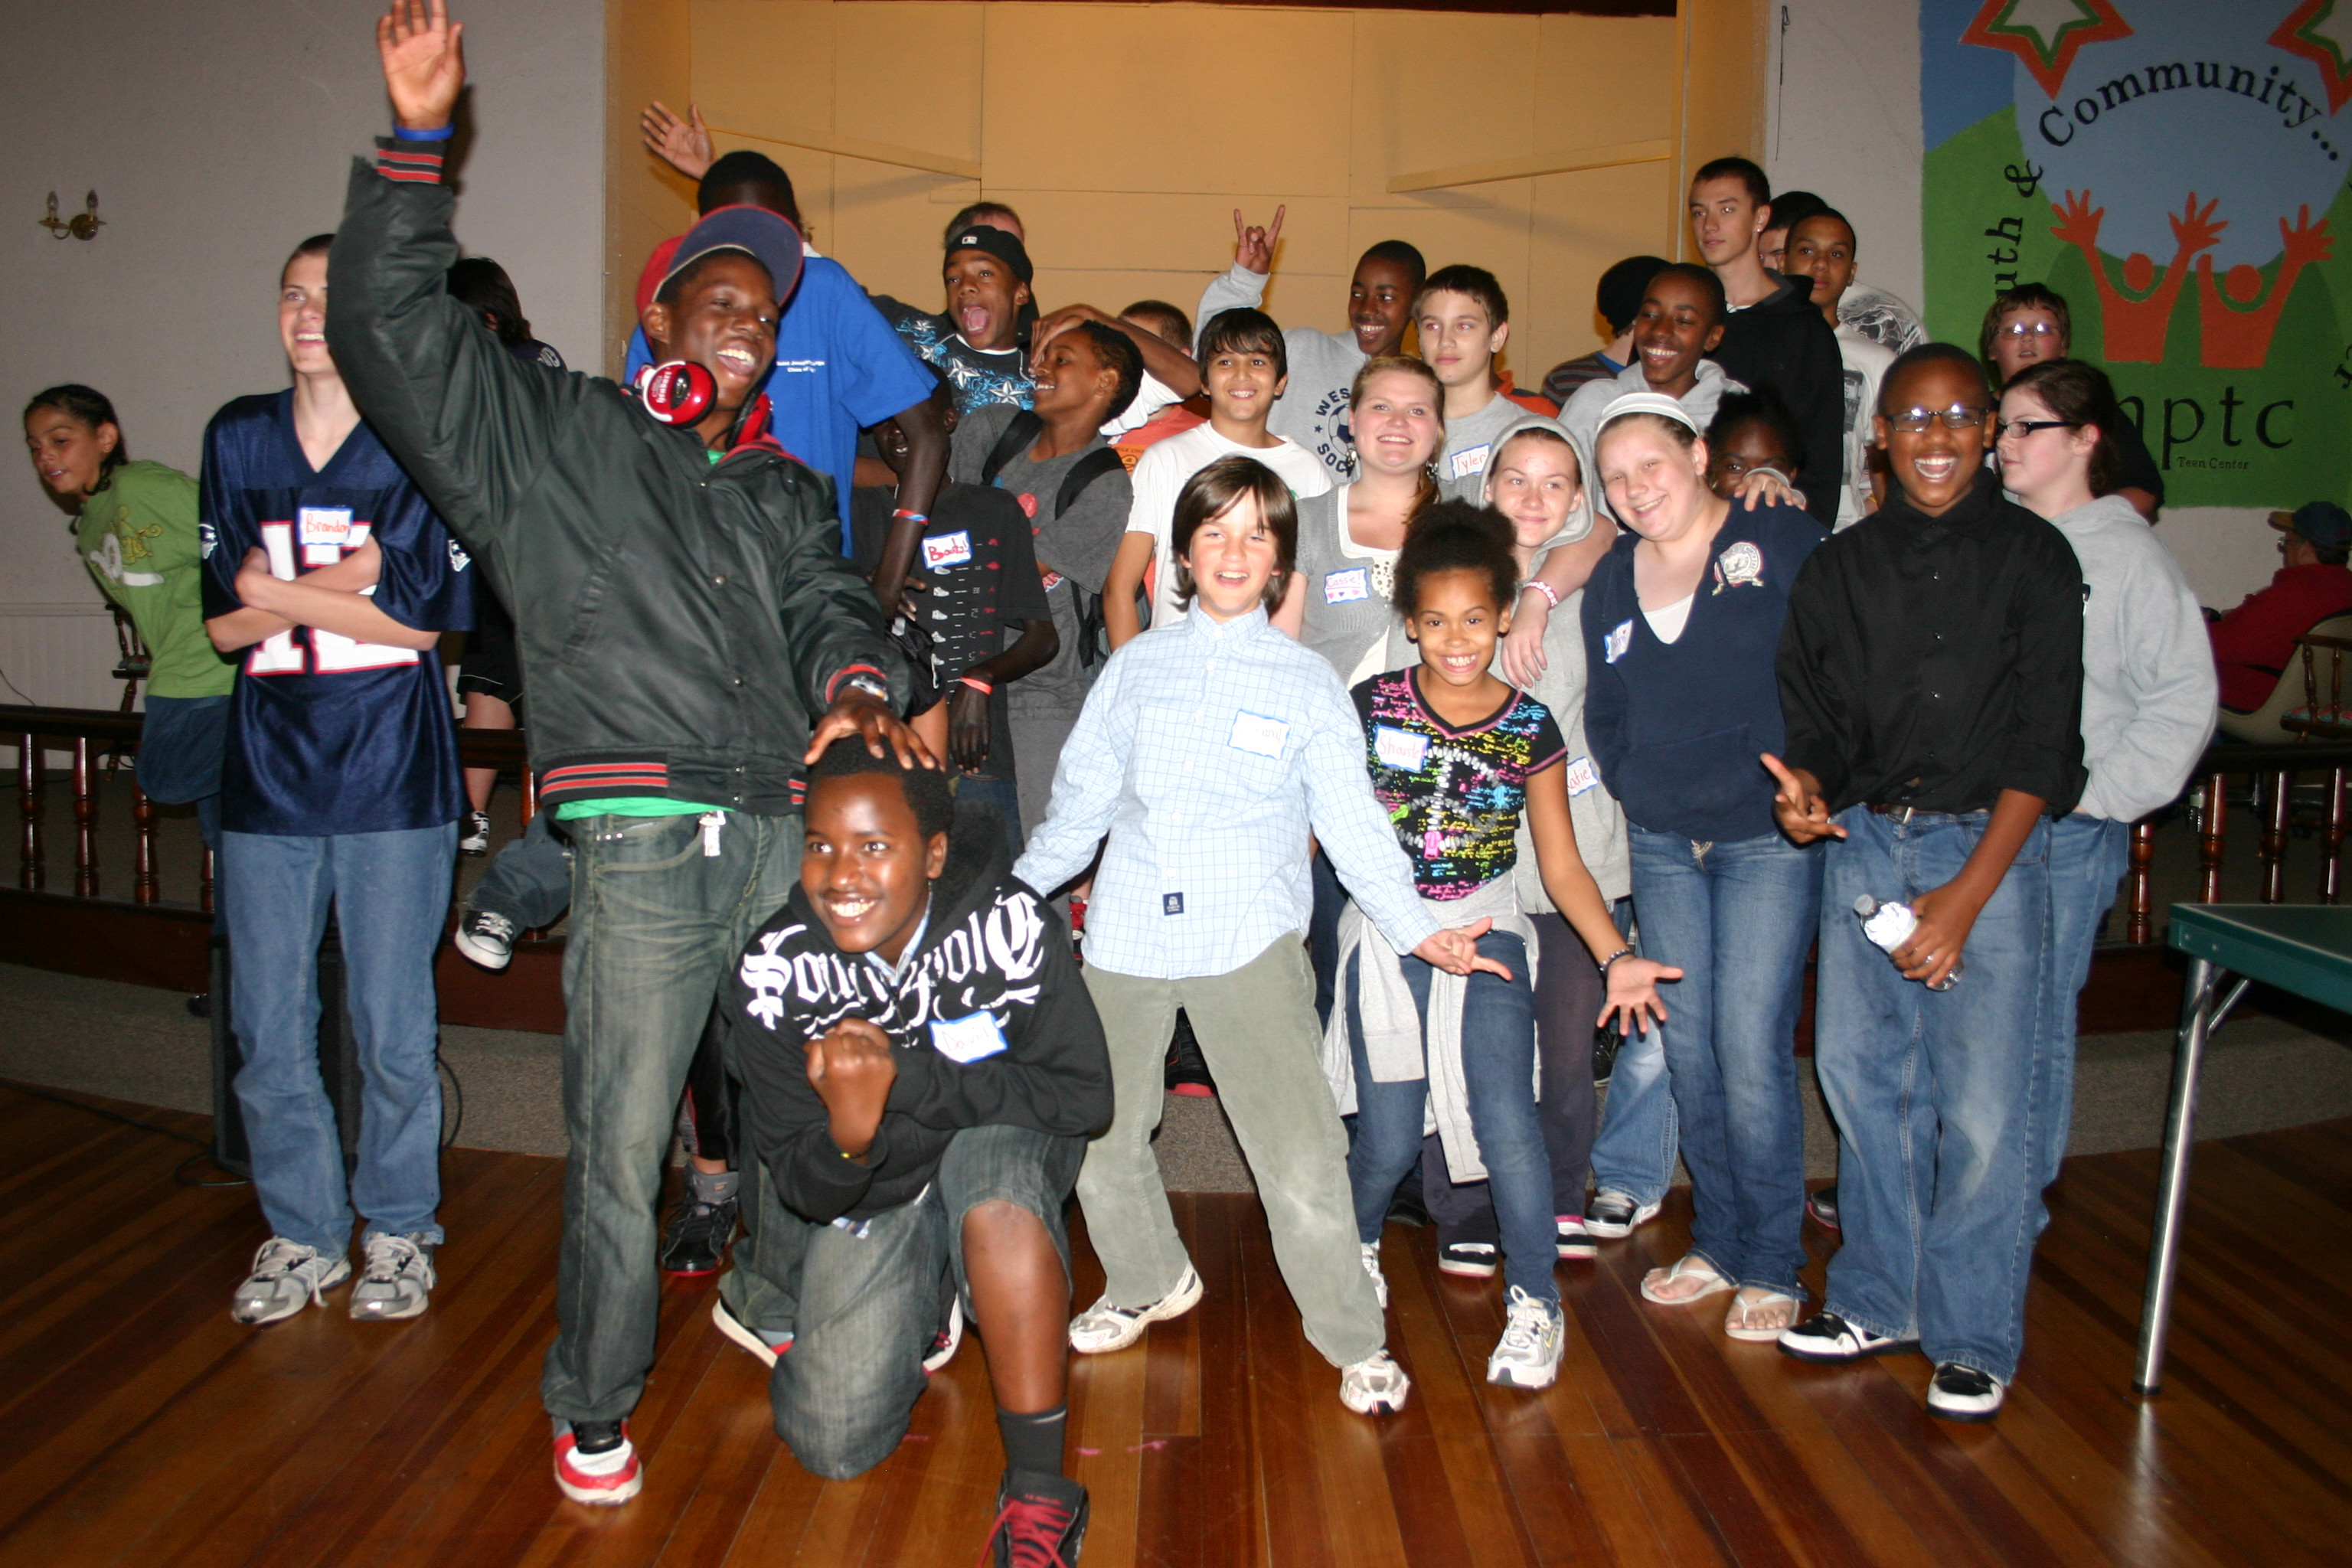 Teen Center celebrated the